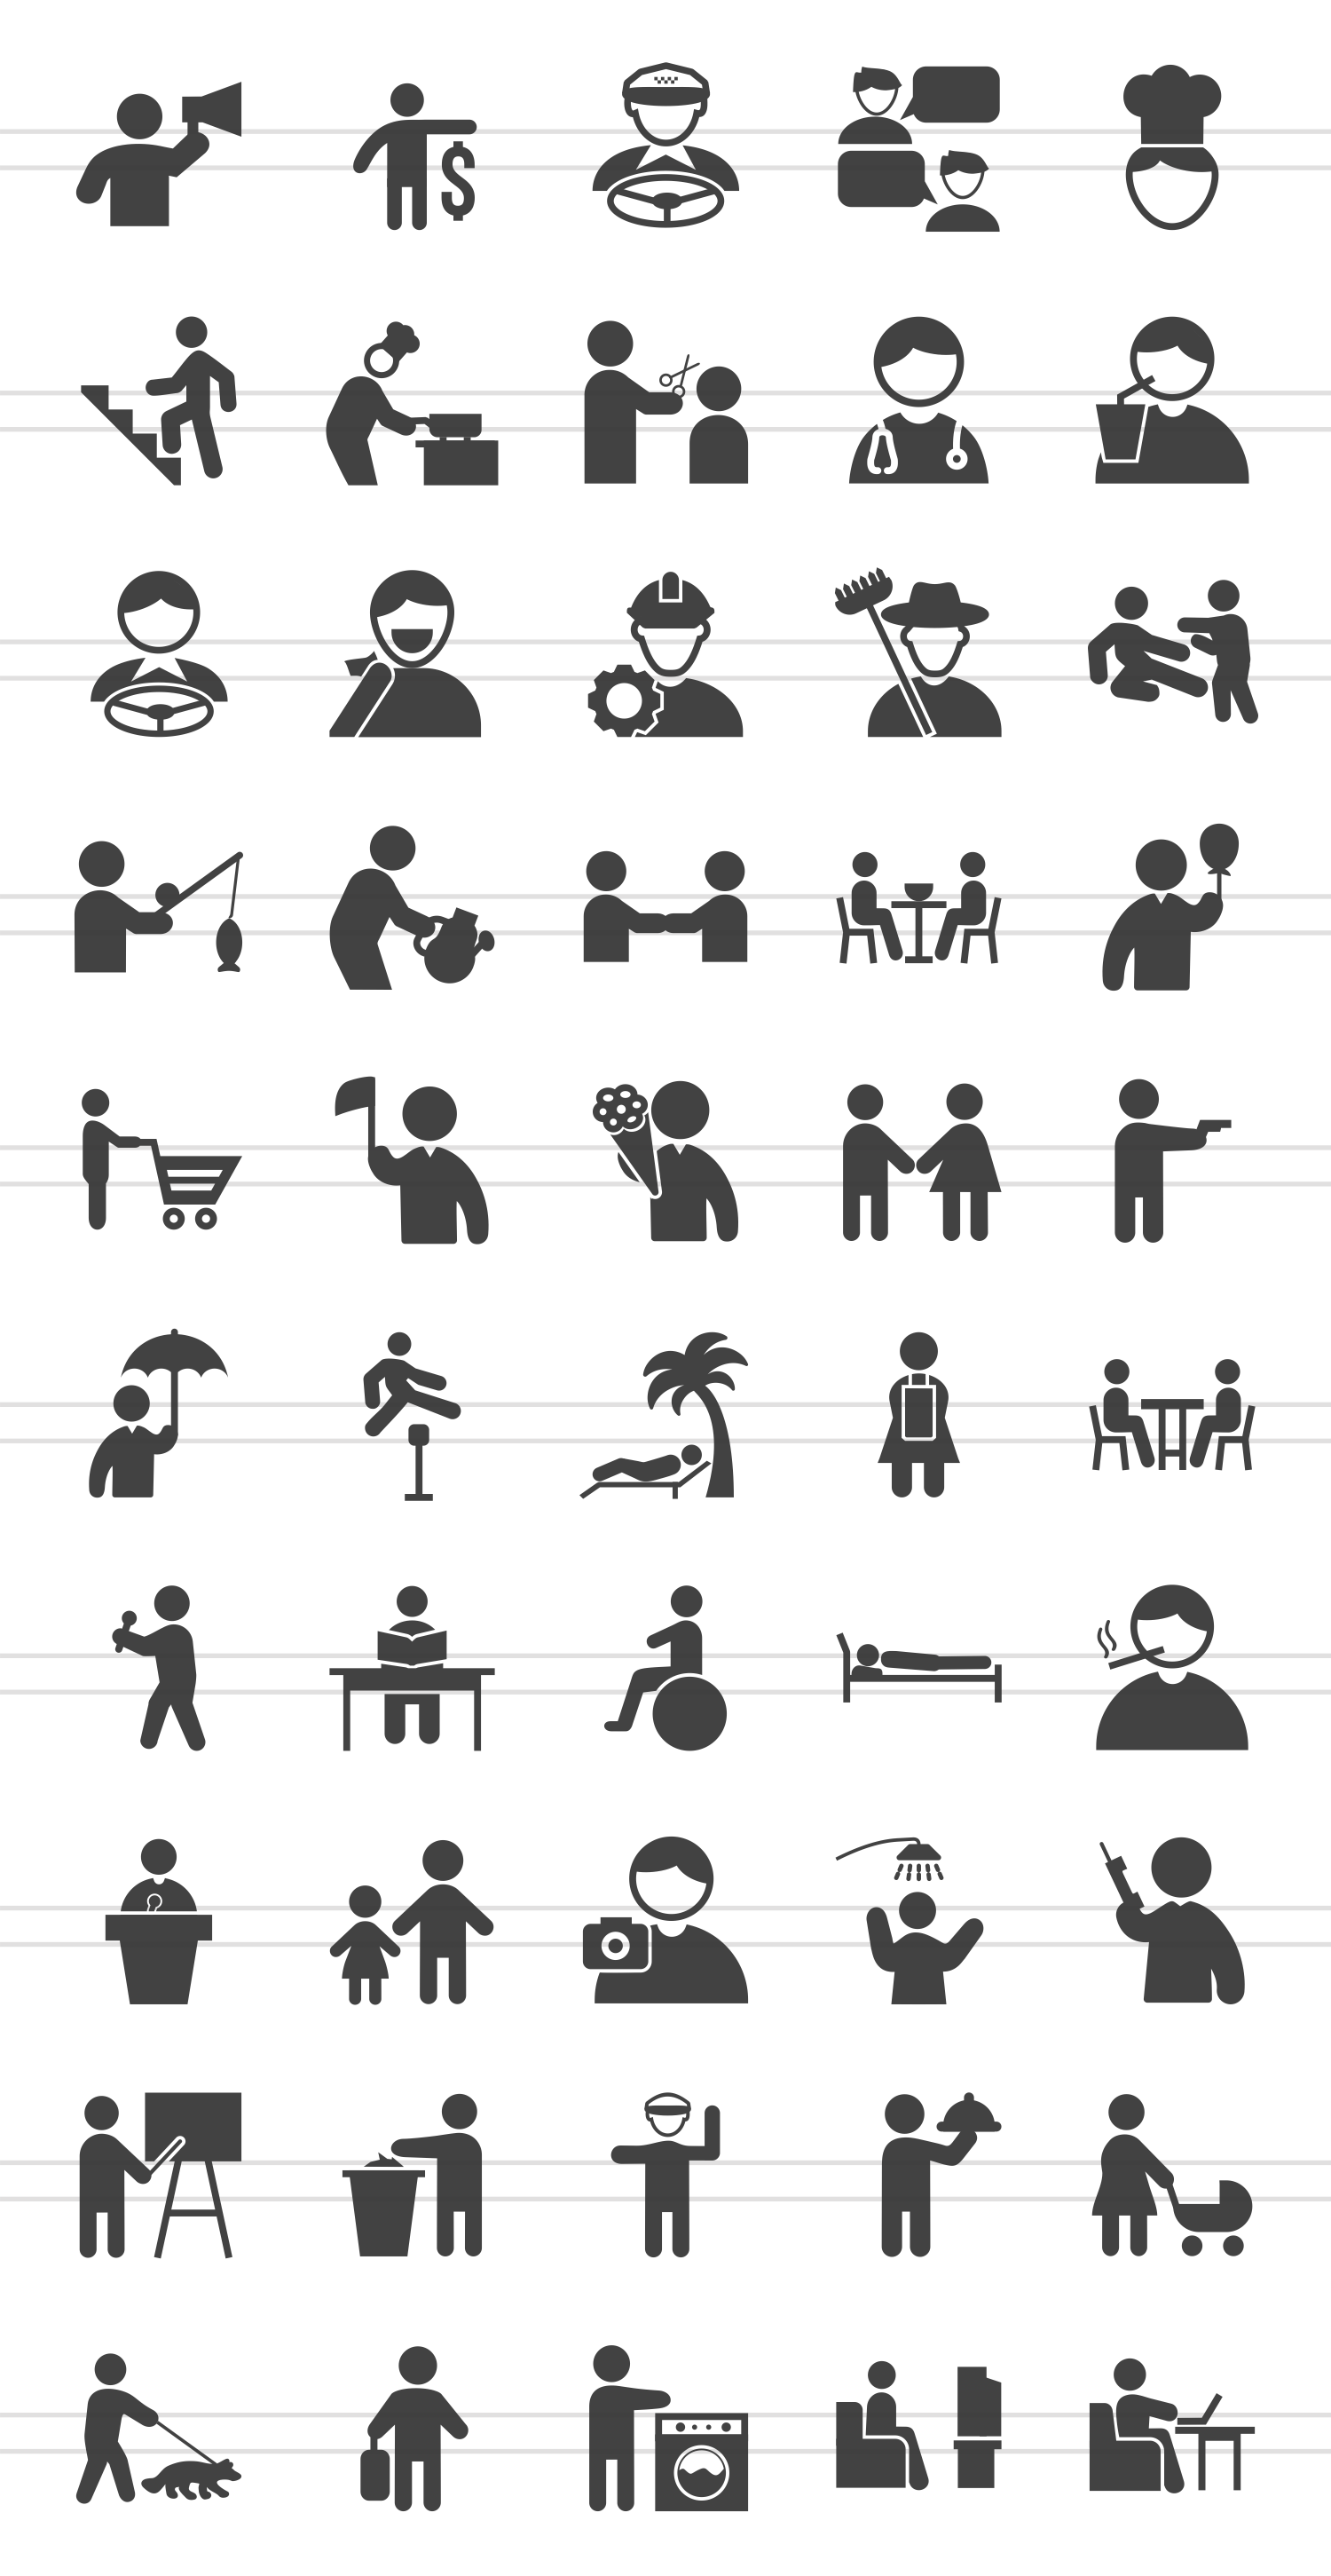 50 Activities Glyph Icons example image 2